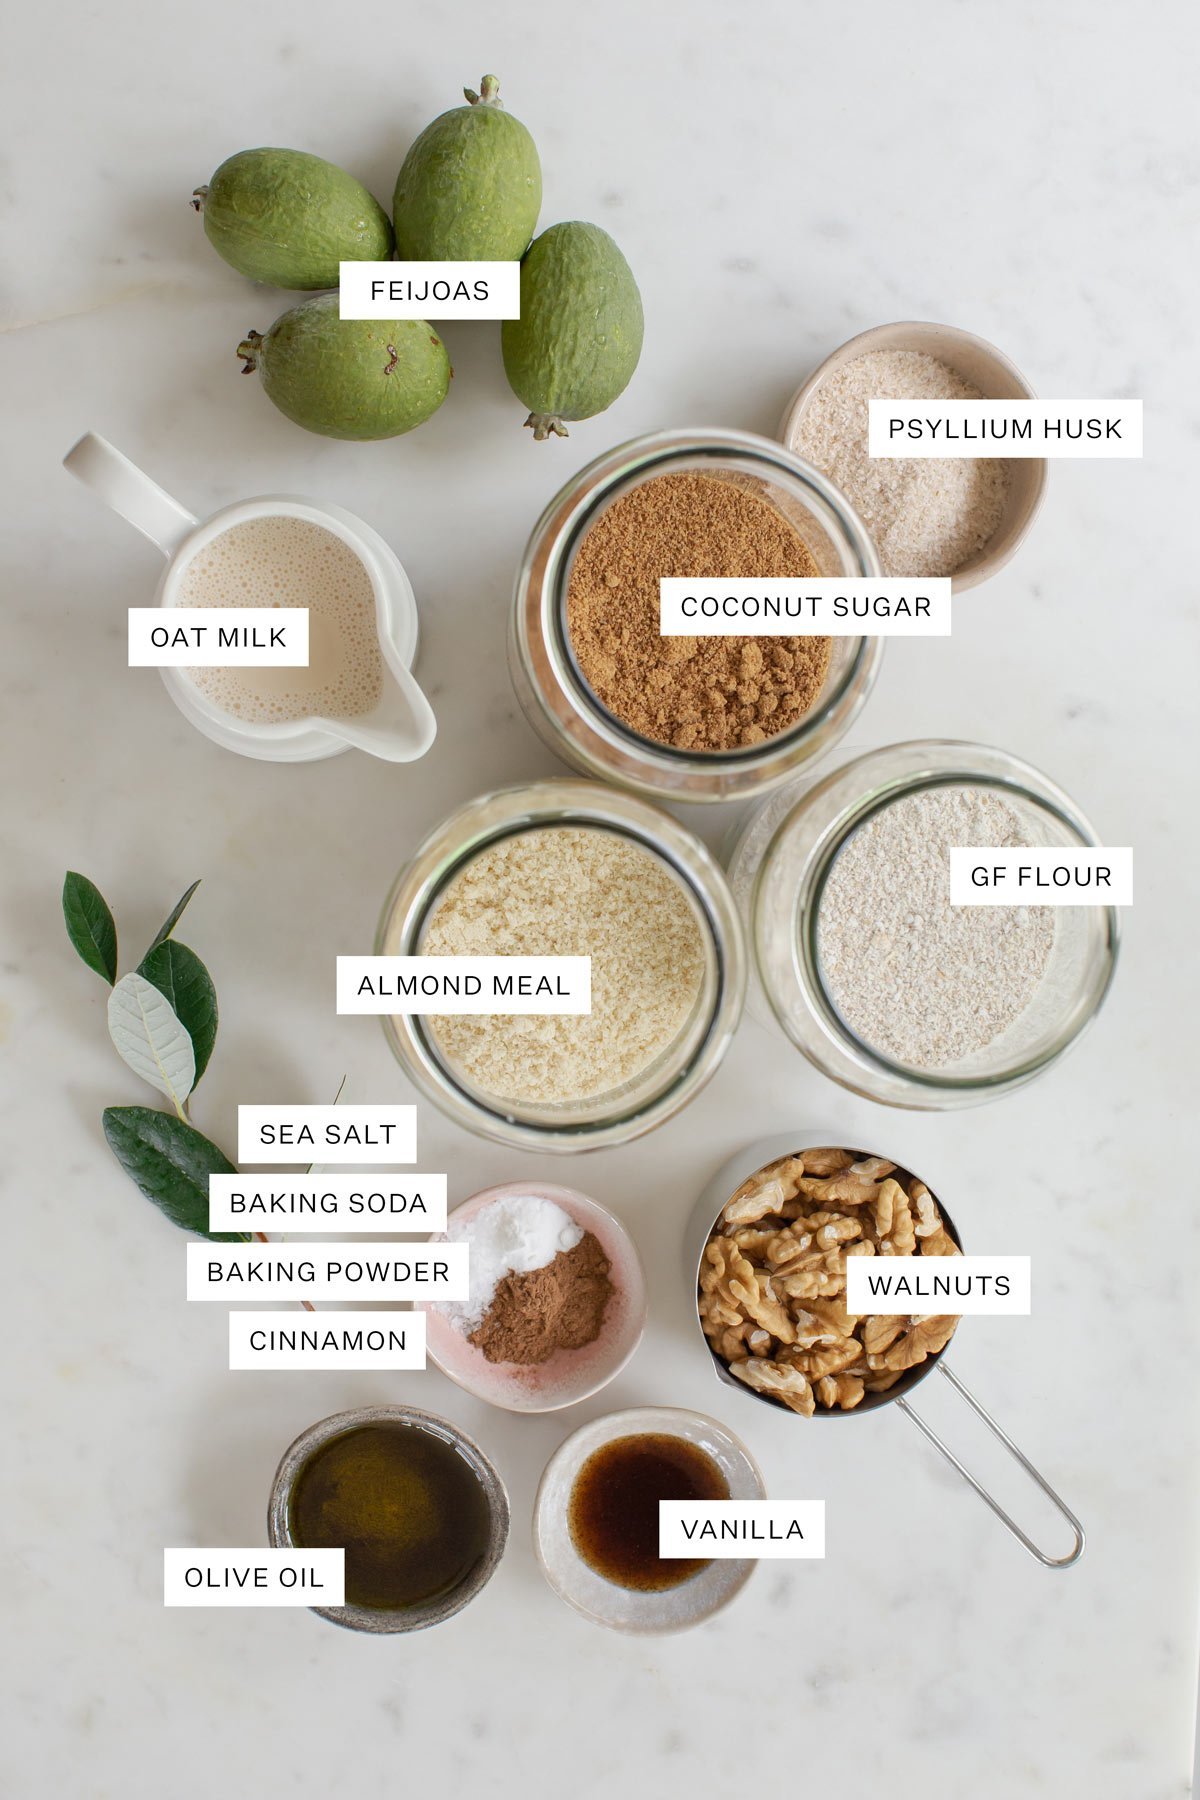 Flat lay of ingredients used to make this feijoa cake